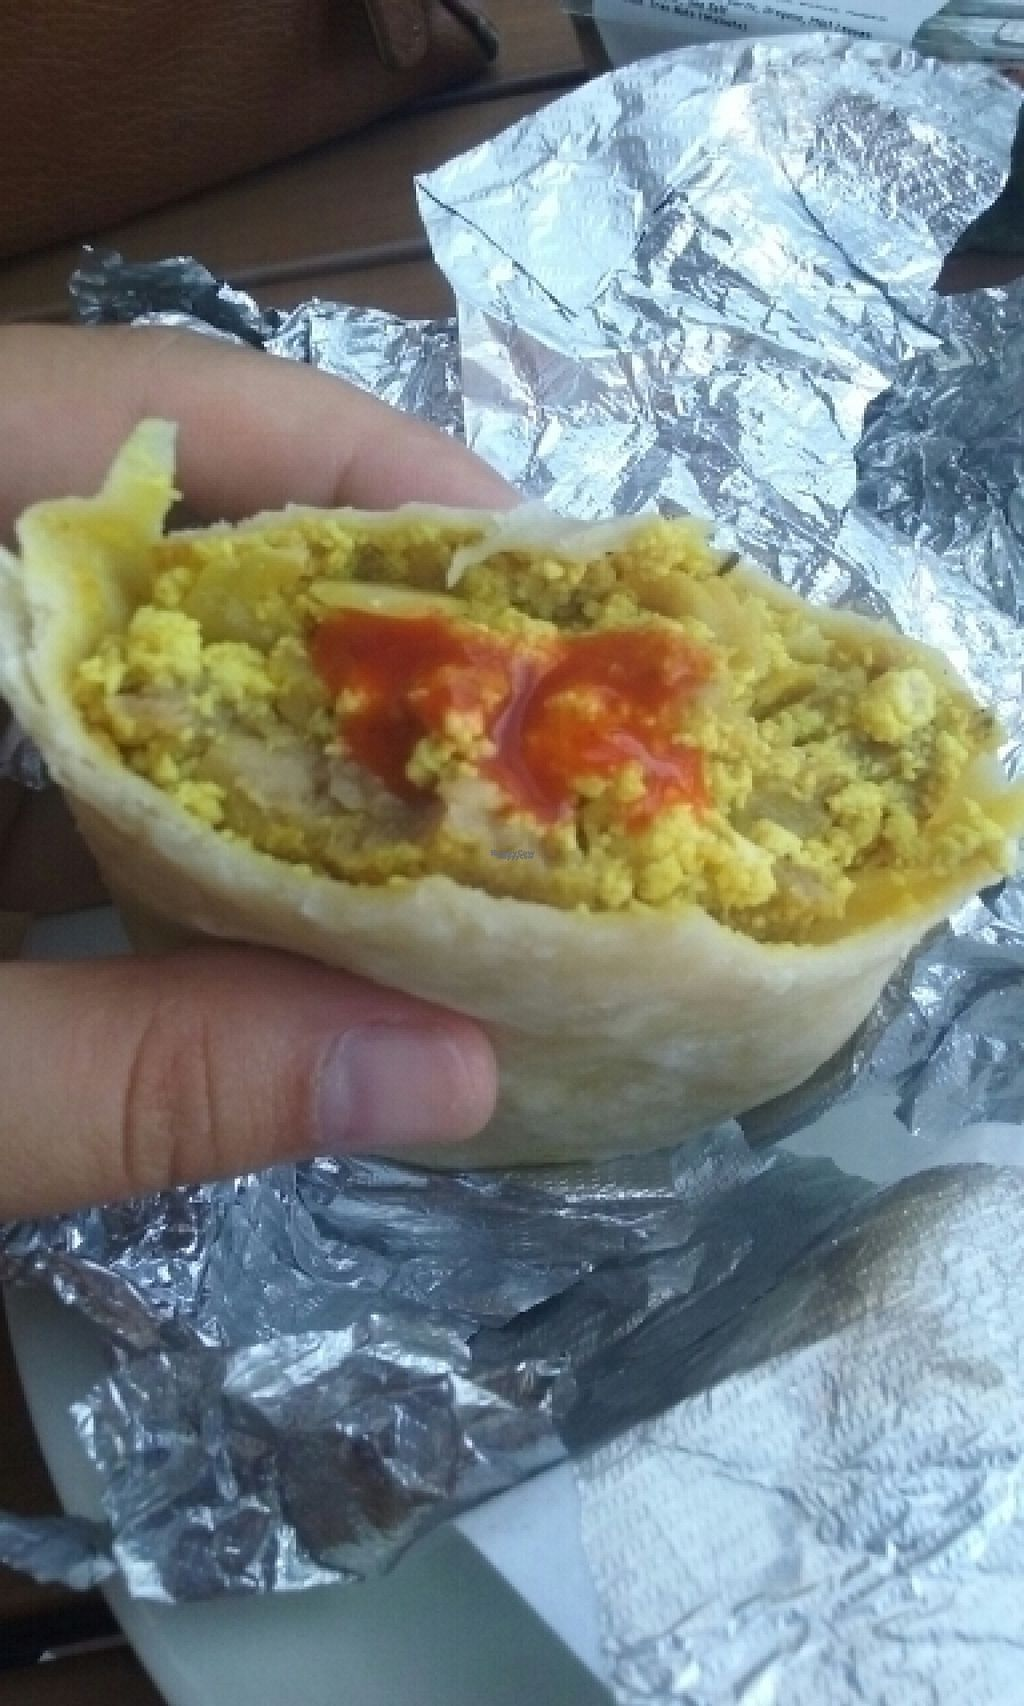 "Photo of Ever'man Cooperative Grocery and Cafe  by <a href=""/members/profile/veggie_htx"">veggie_htx</a> <br/>Vegan breakfast tofu scramble wrap <br/> August 17, 2016  - <a href='/contact/abuse/image/1850/169376'>Report</a>"